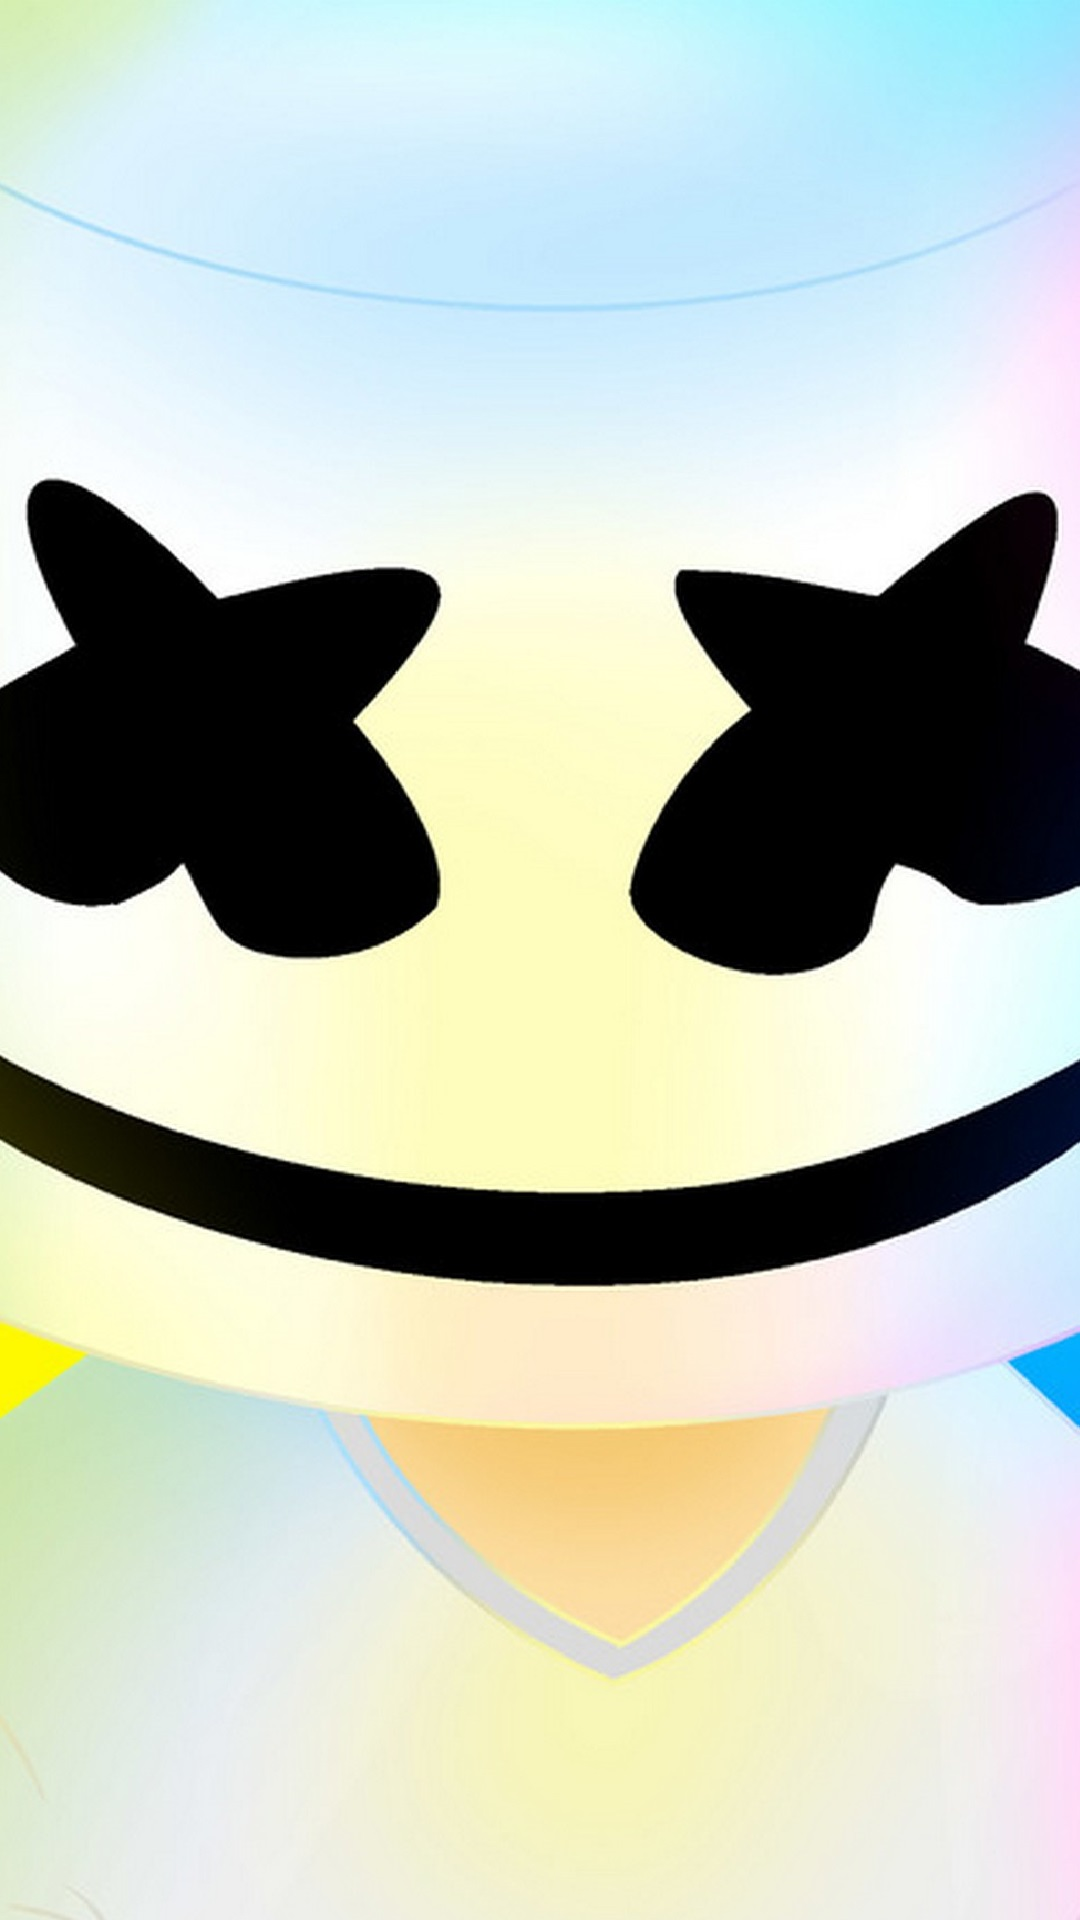 Marshmello iPhone Home Screen Wallpaper   2021 Cute iPhone Wallpaper 1080x1920